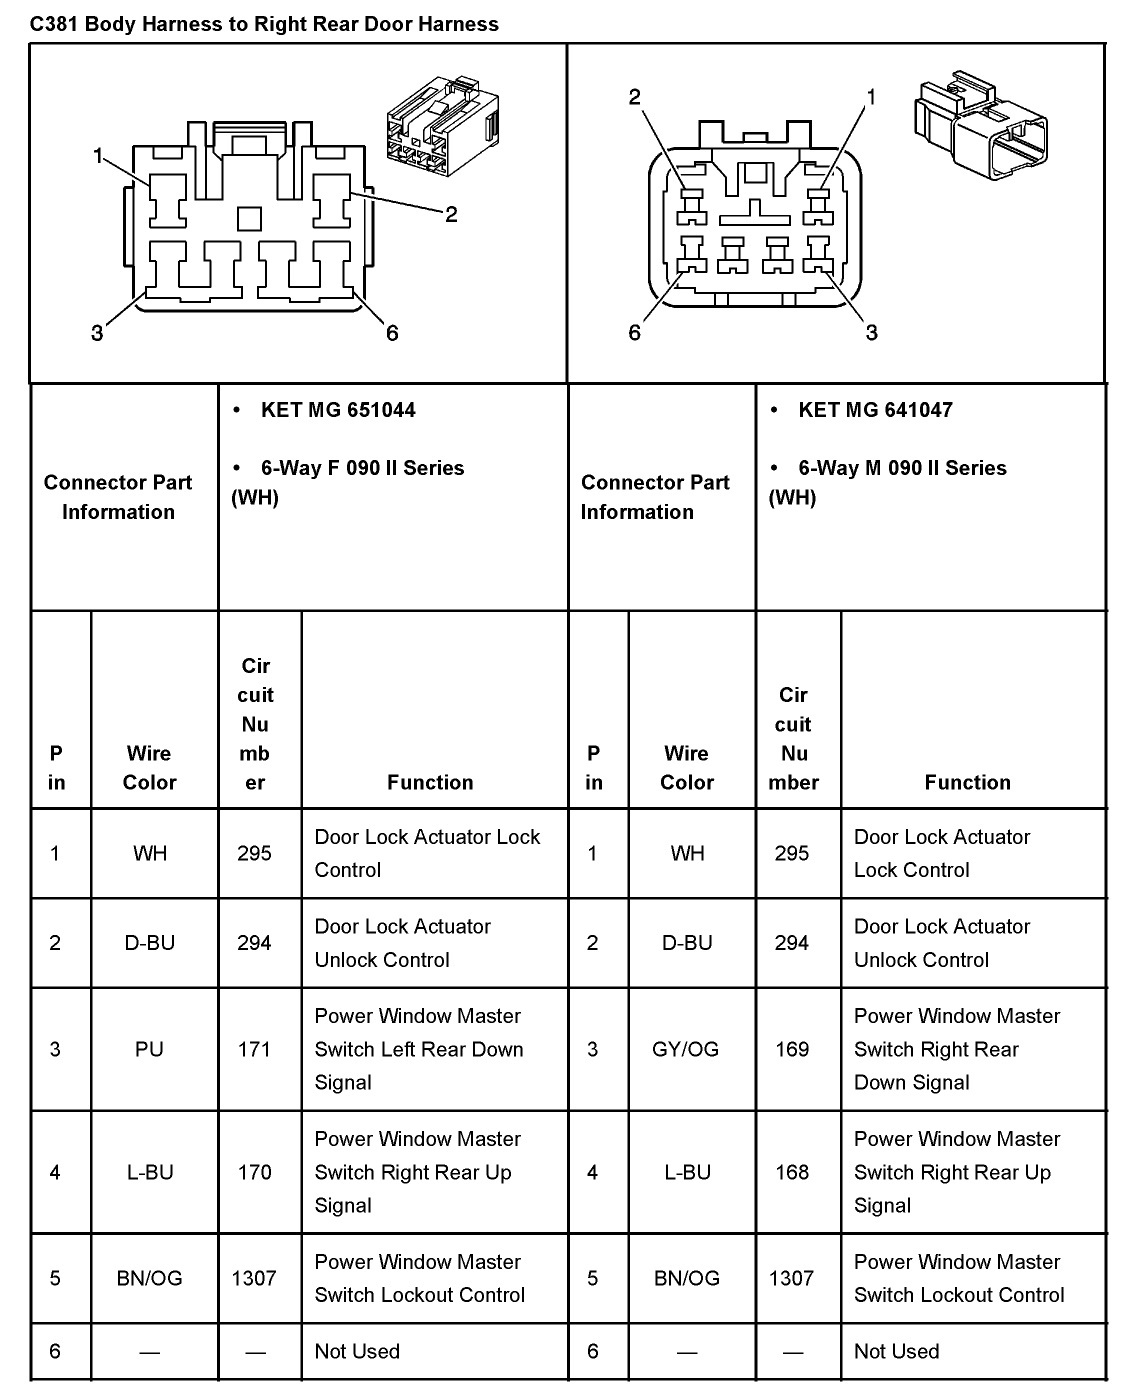 2008 chevrolet aveo wiring diagram - somurich.com 2008 chevrolet aveo wiring diagram chevrolet aveo wiring harness connectors #15